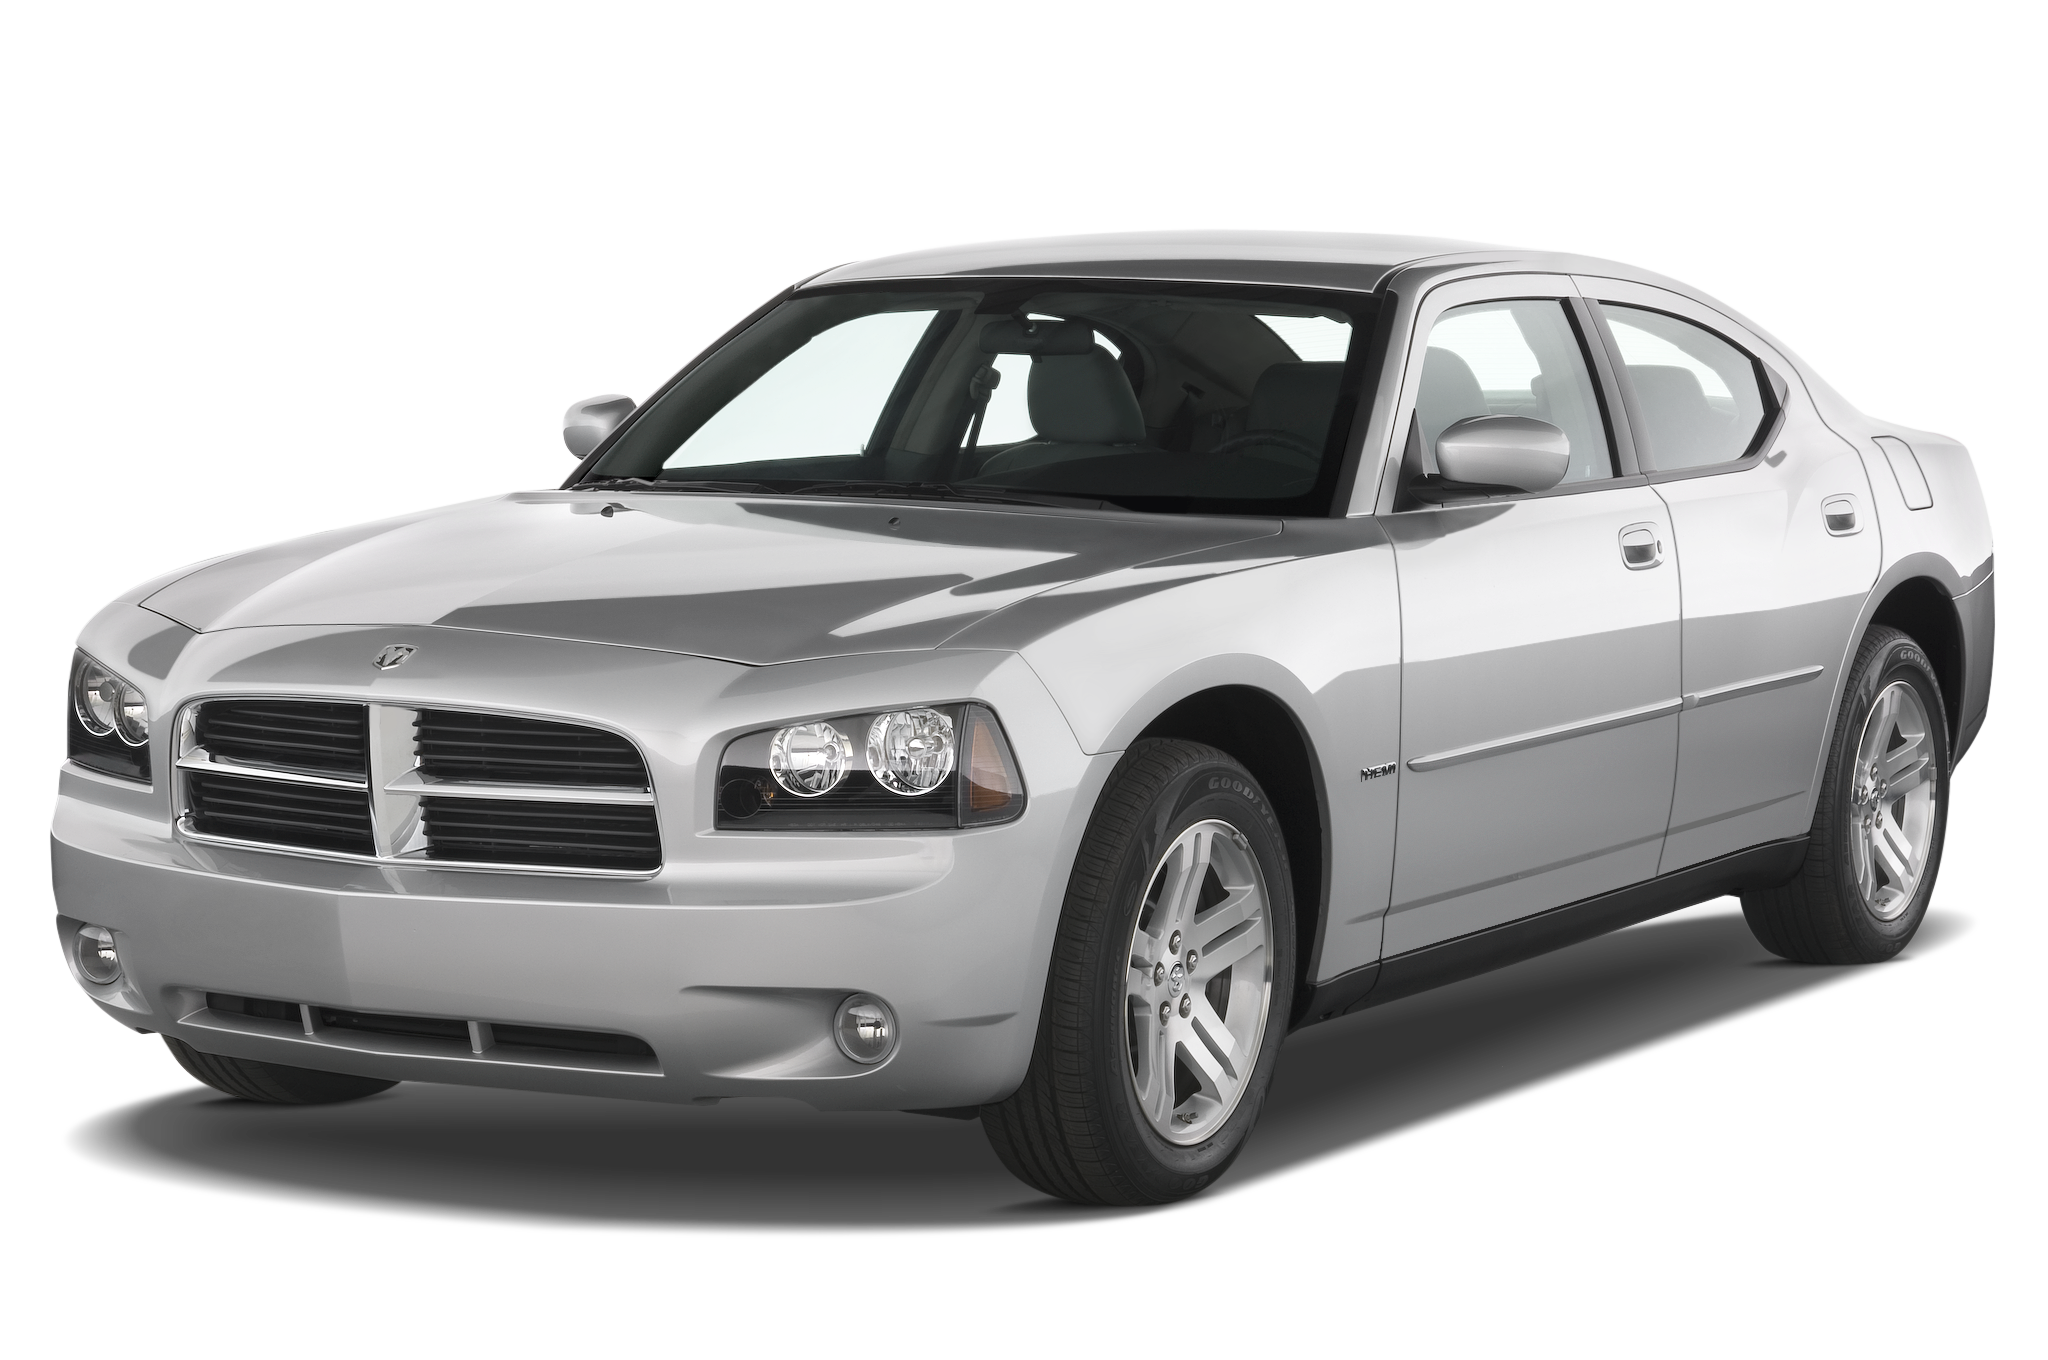 2010 dodge charger srt8 dodge sports coupe review. Black Bedroom Furniture Sets. Home Design Ideas